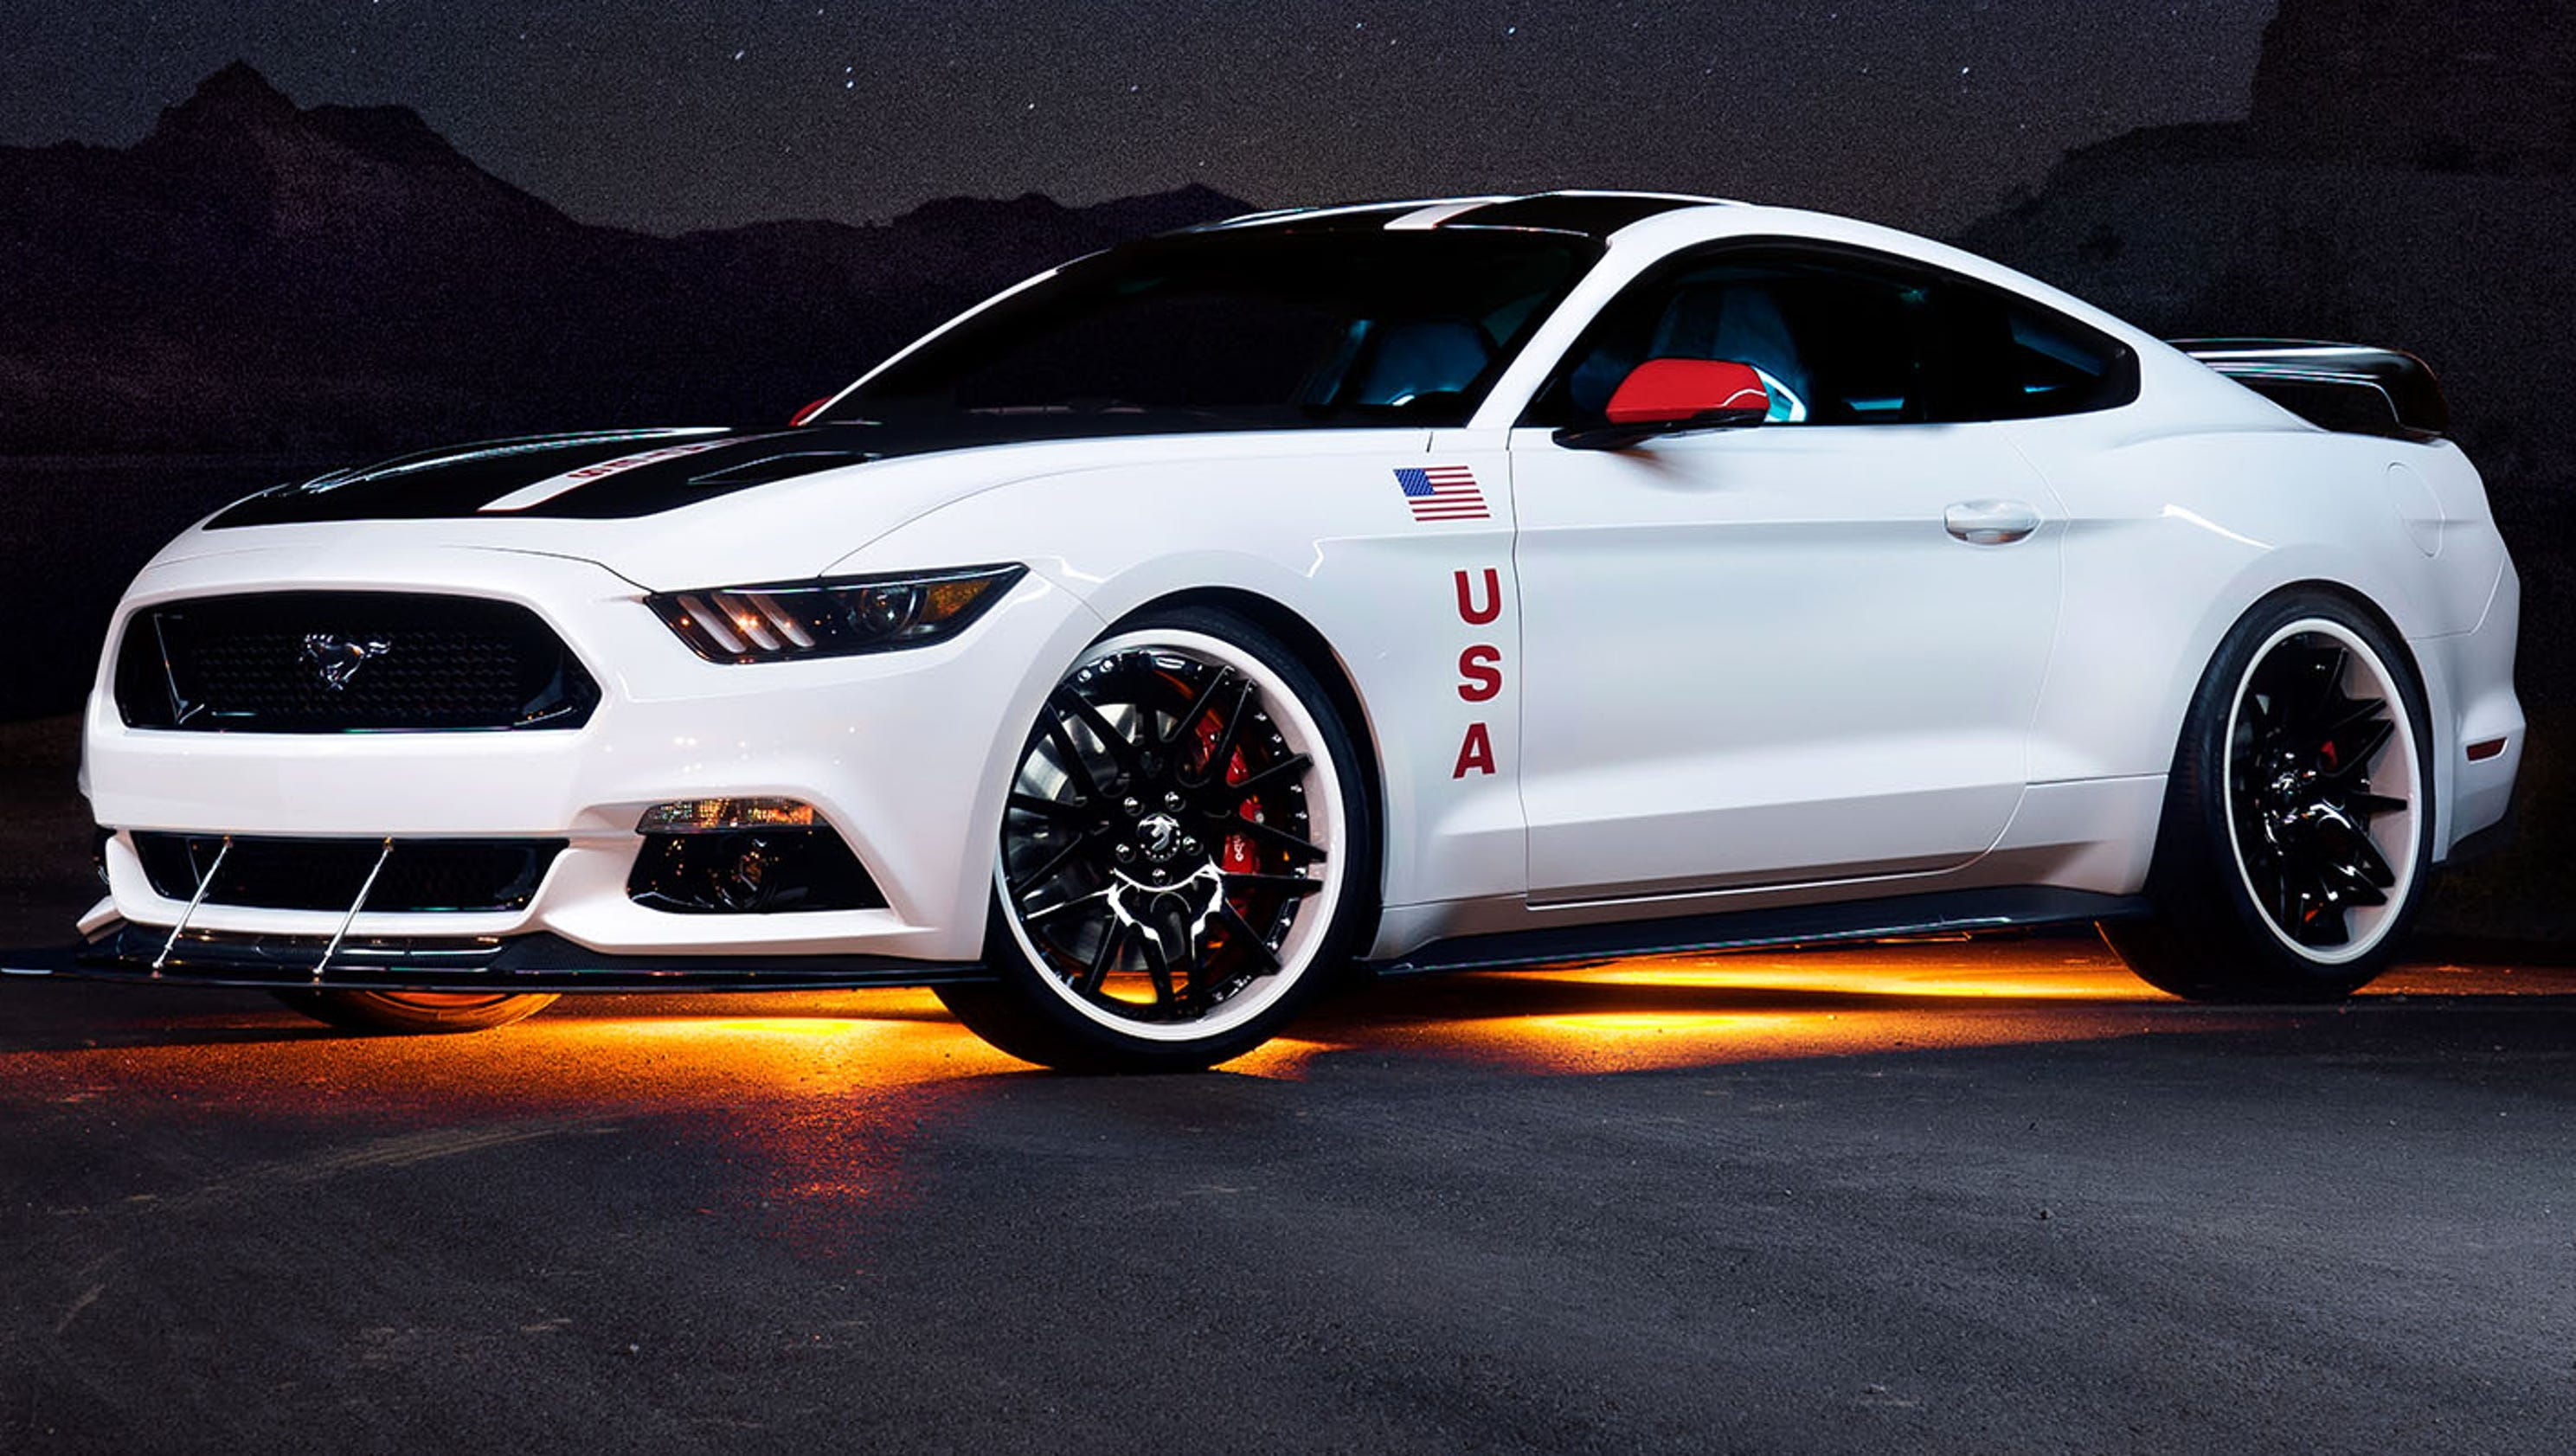 EAA Ford Mustang honors Apollo moon missions